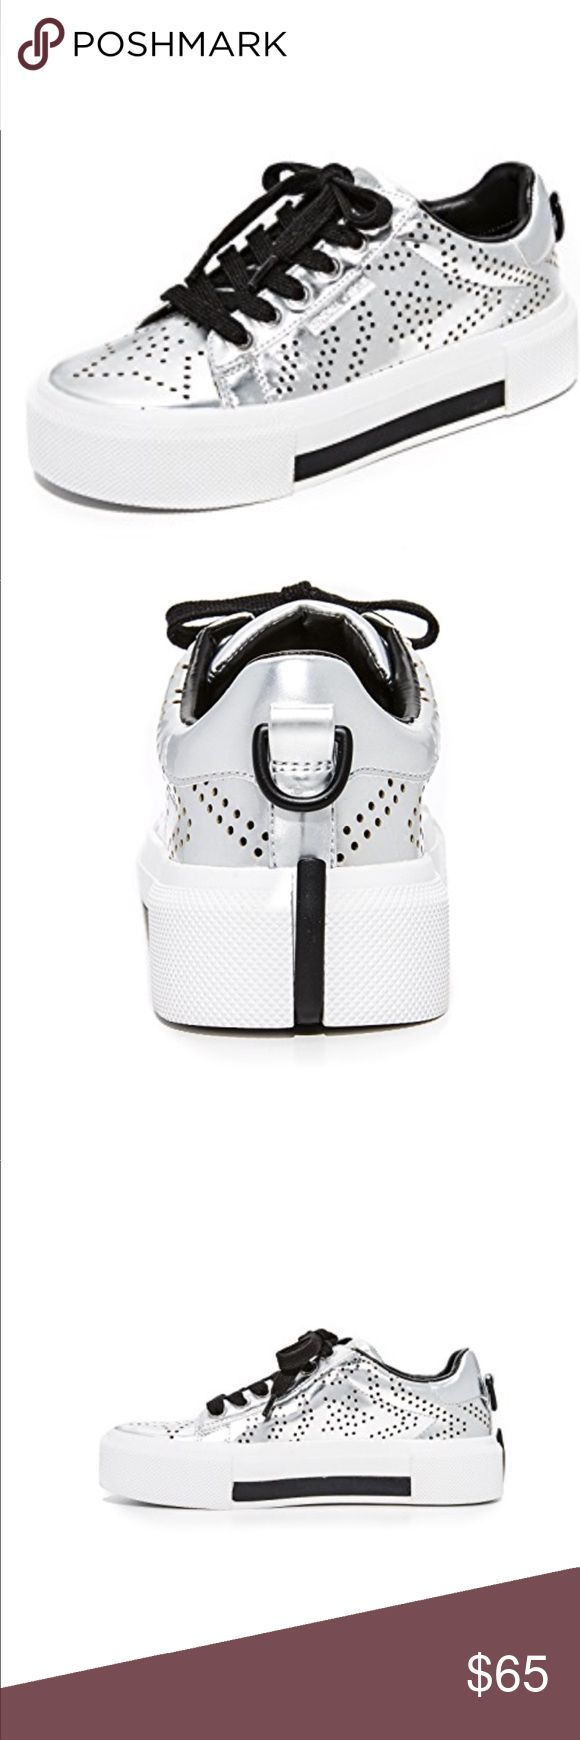 Kendall and Kylie silver sneakers Cool sneakers from Kendall and Kylie . Silver with perforated stars and slight platform bottom. Brand new . Never worn. Kendall & Kylie Shoes Sneakers